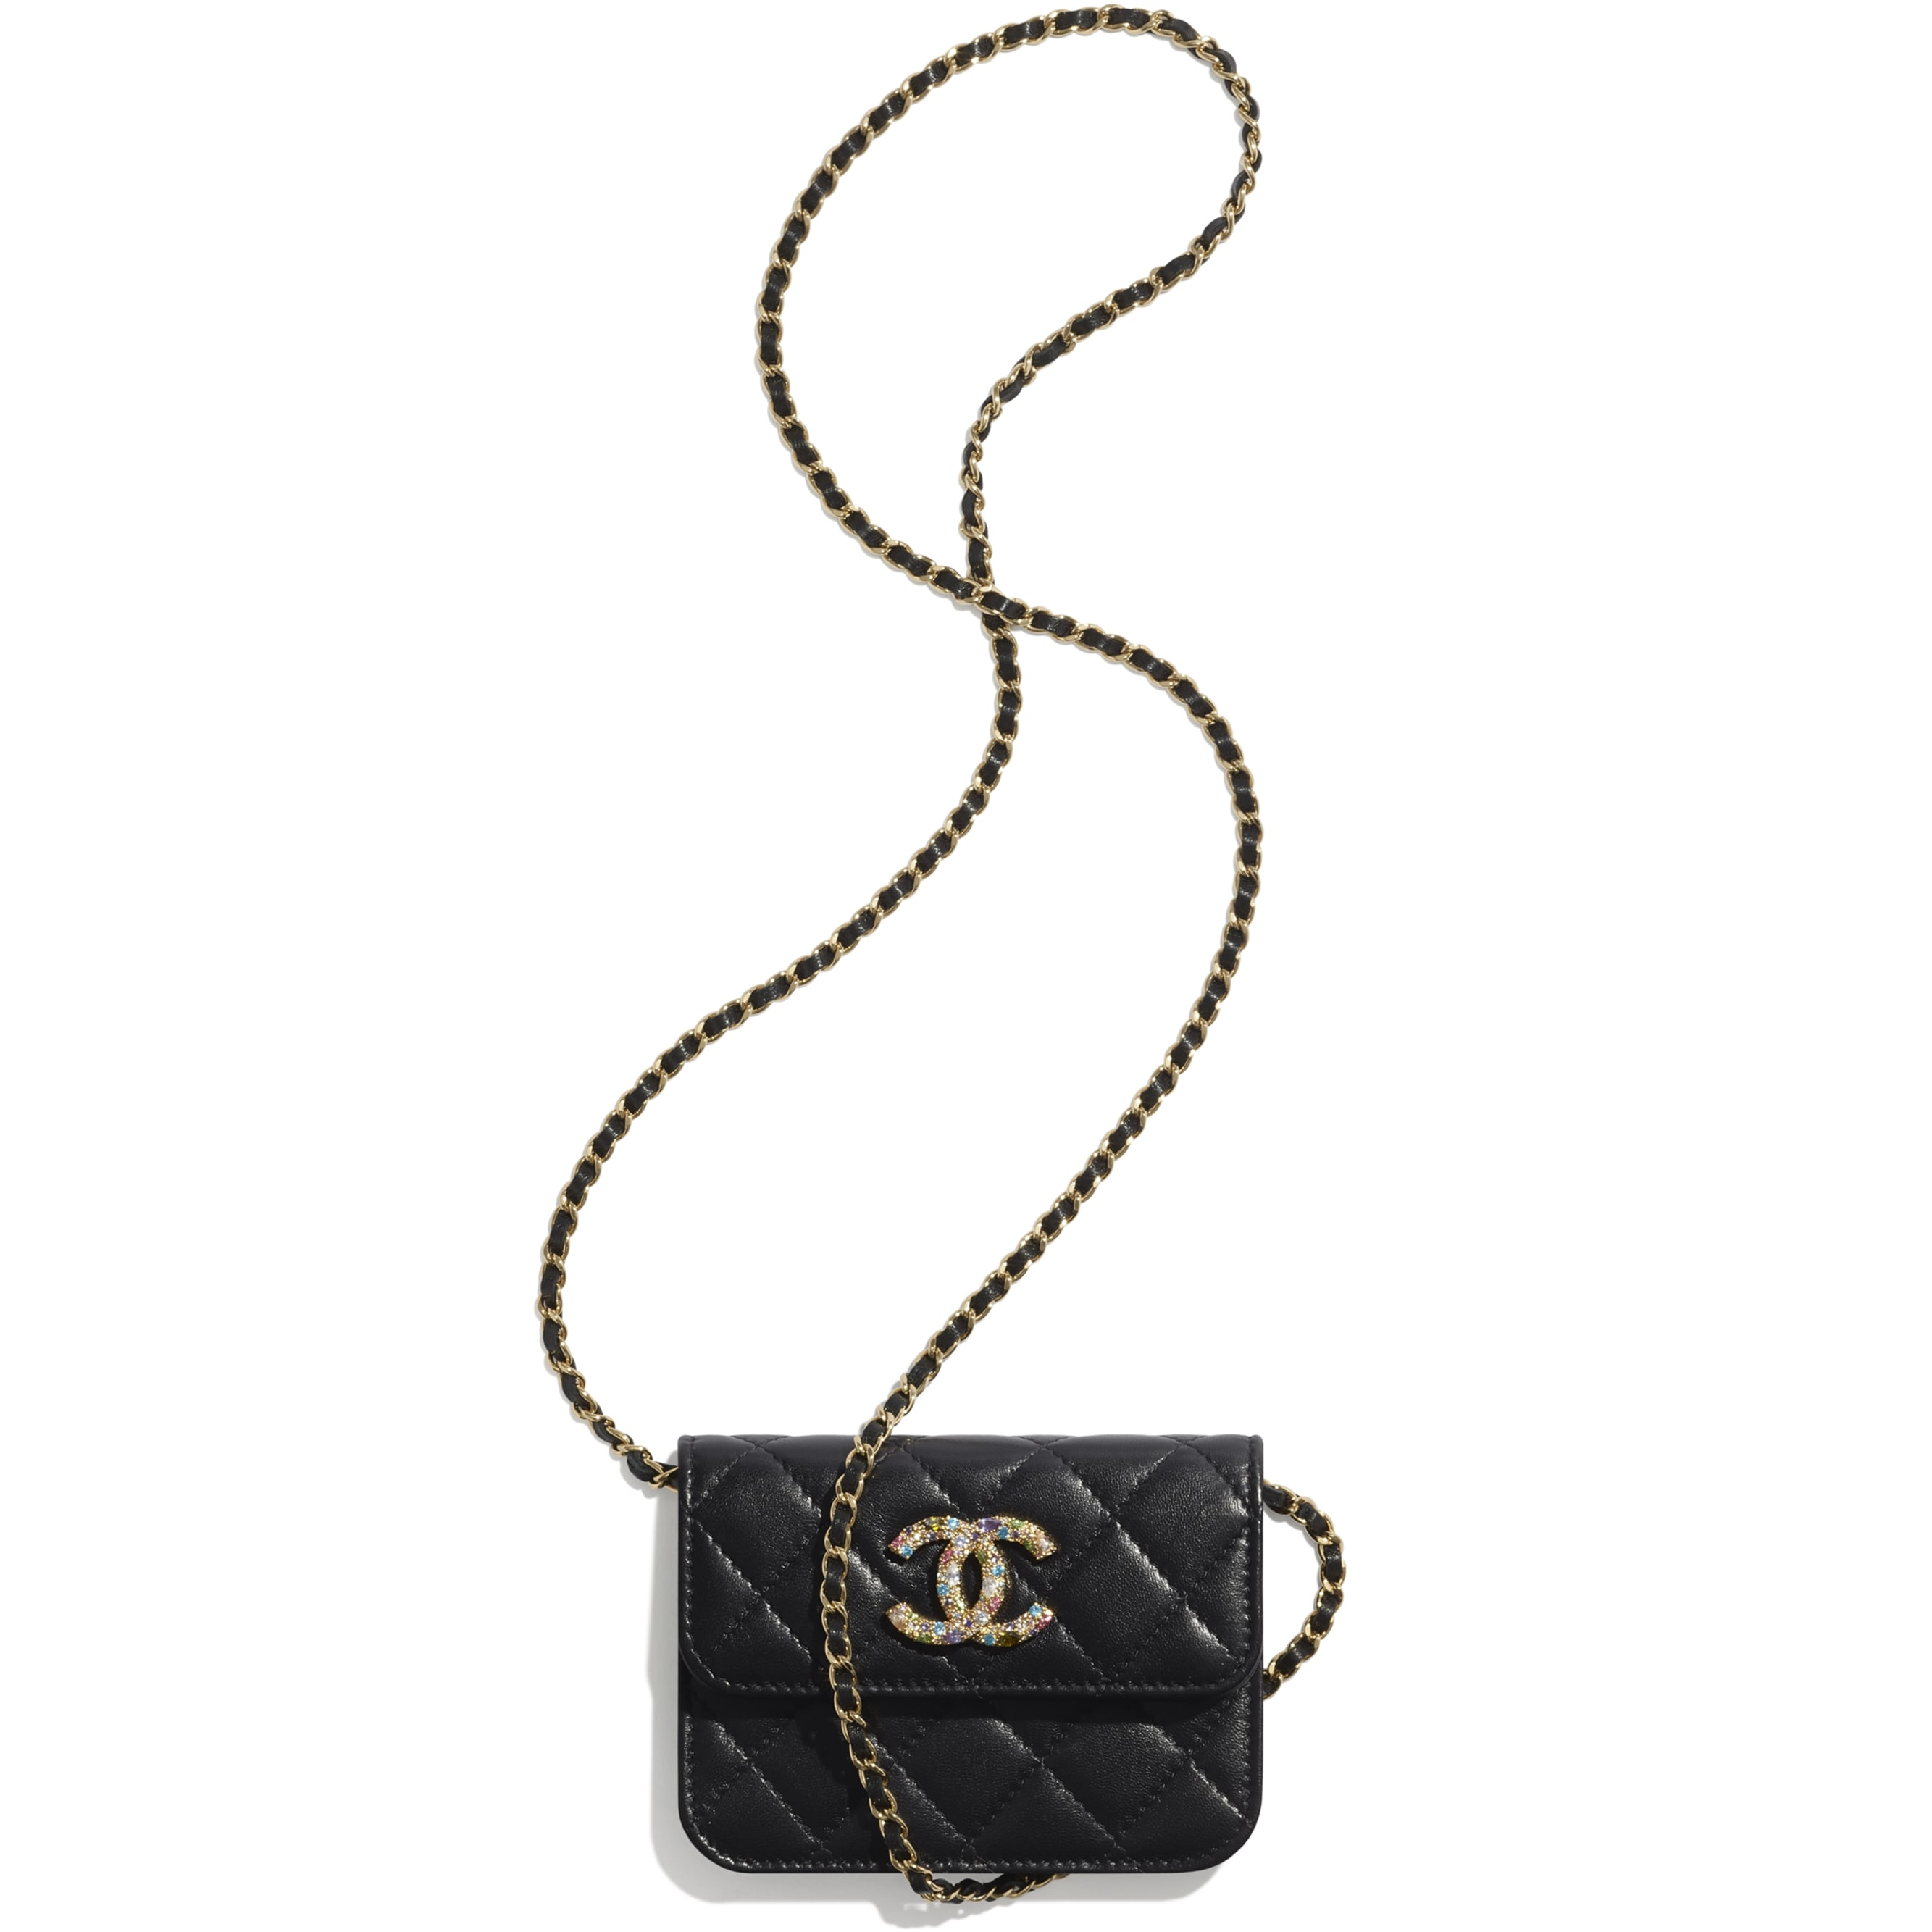 Clutch With Chain - Black - Lambskin, Zirconium & Gold-Tone Metal - CHANEL - Other view - see standard sized version